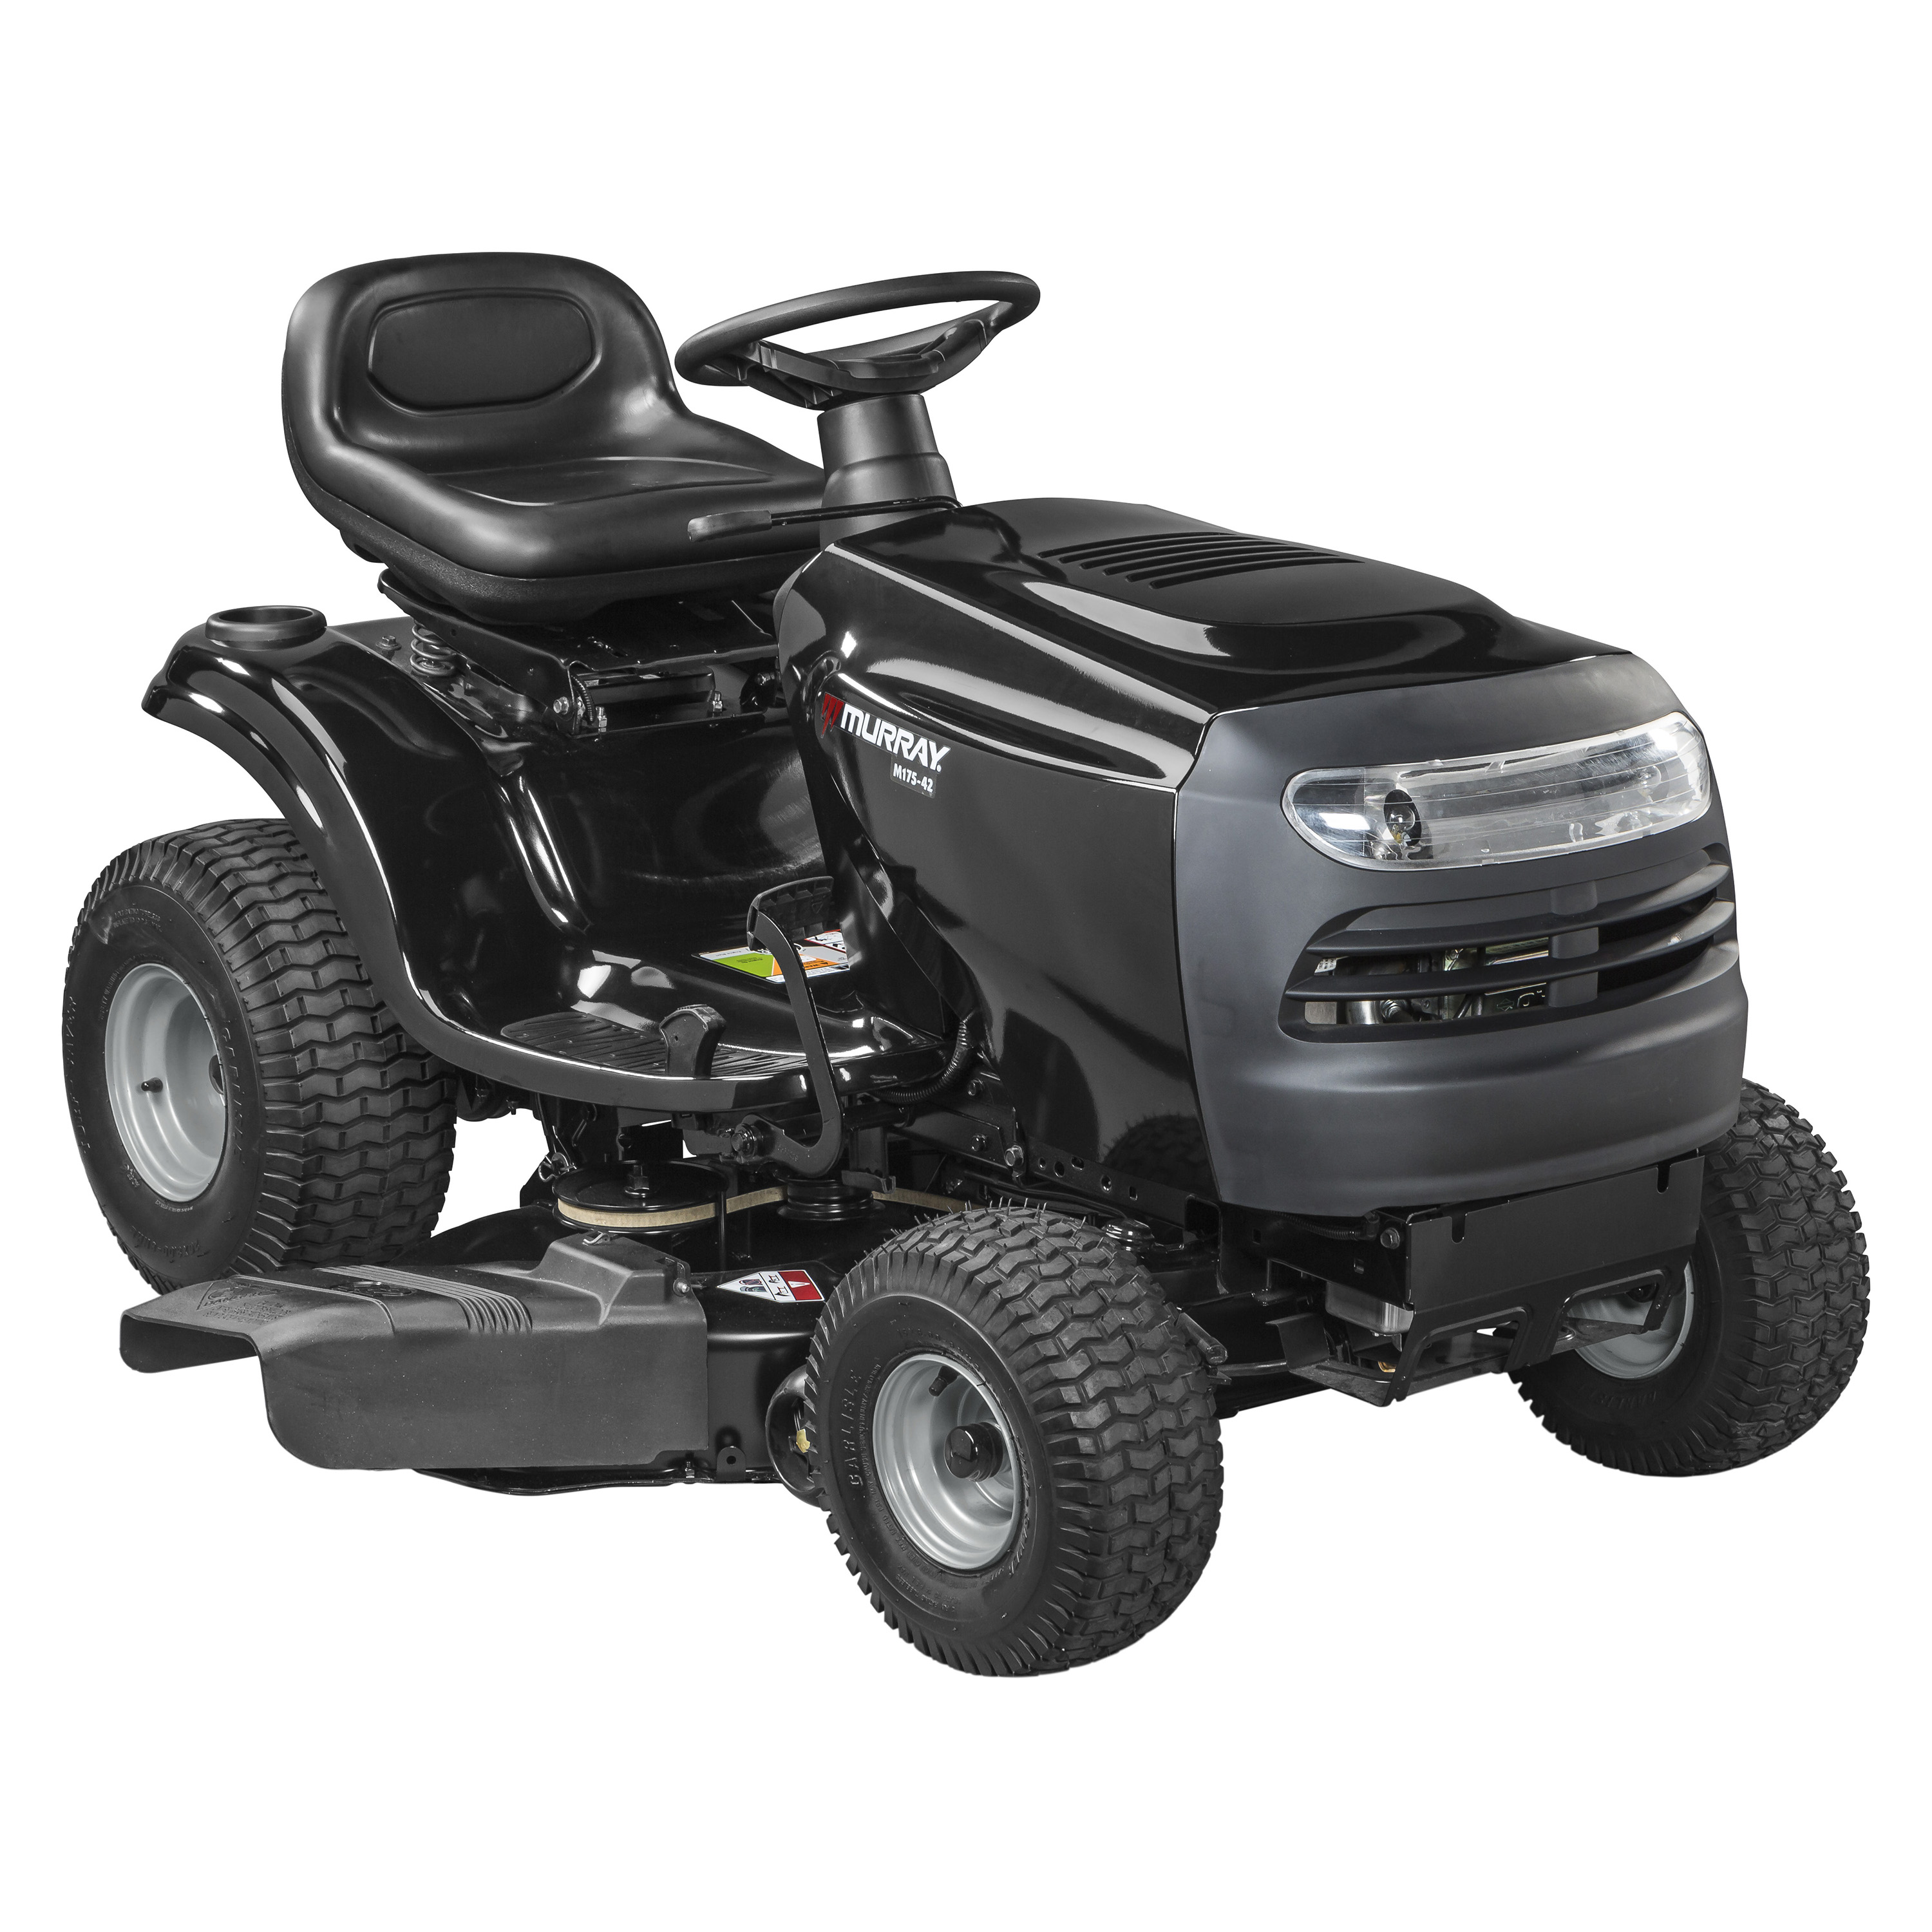 Murray 42 in. 17.5 HP Briggs & Stratton Riding Mower